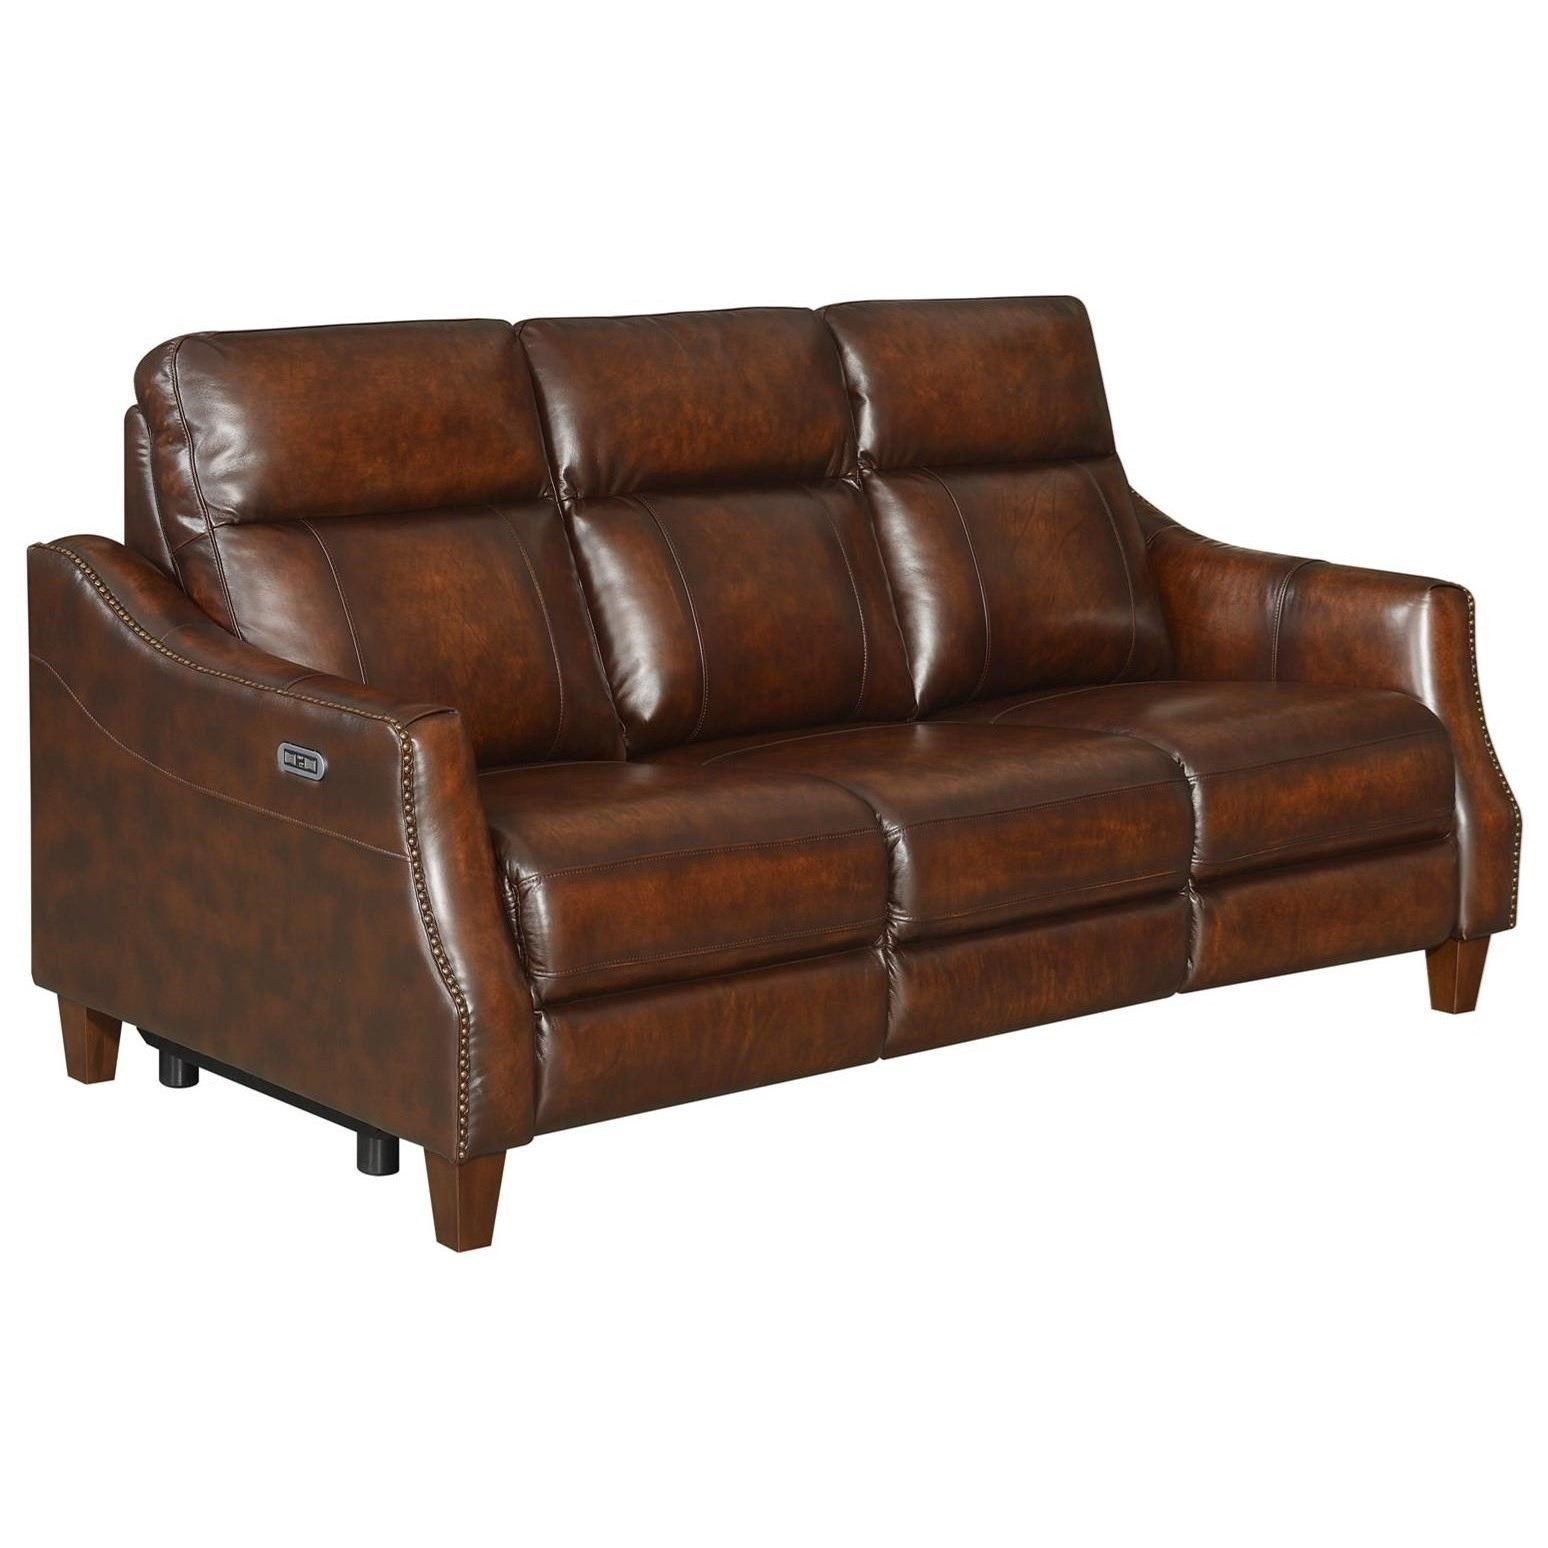 Akari Dual-Power Recliner Sofa by Star at EFO Furniture Outlet